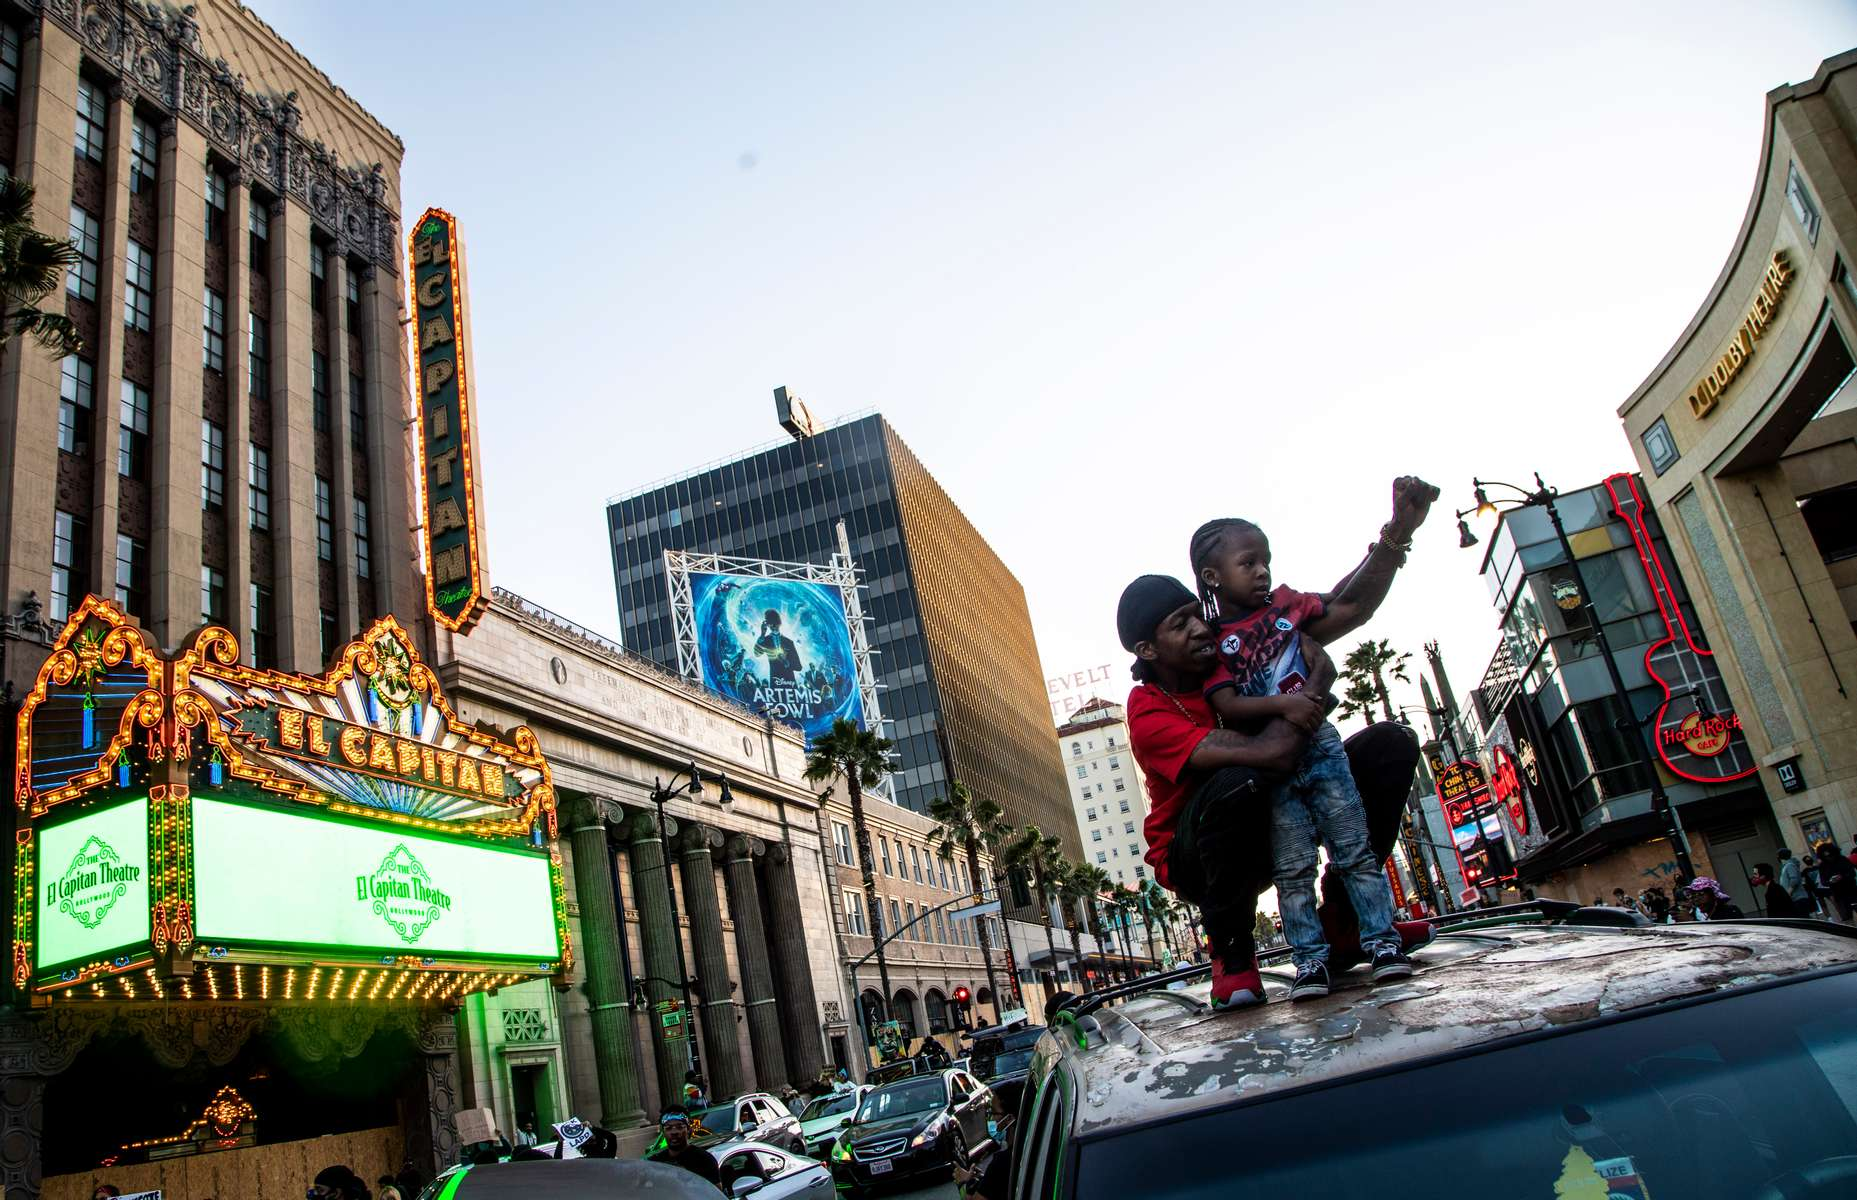 Teady  and his son Zamir stand on top of their car during the march organized by Black Lives Matter on Hollywood Boulevard, on June 7, 2020, in Los Angeles, California. Thousand people attended the thirteen day of protest following the death of George Floyd, an unarmed black man, who died after a police officer kneeled on his neck for several minutes.